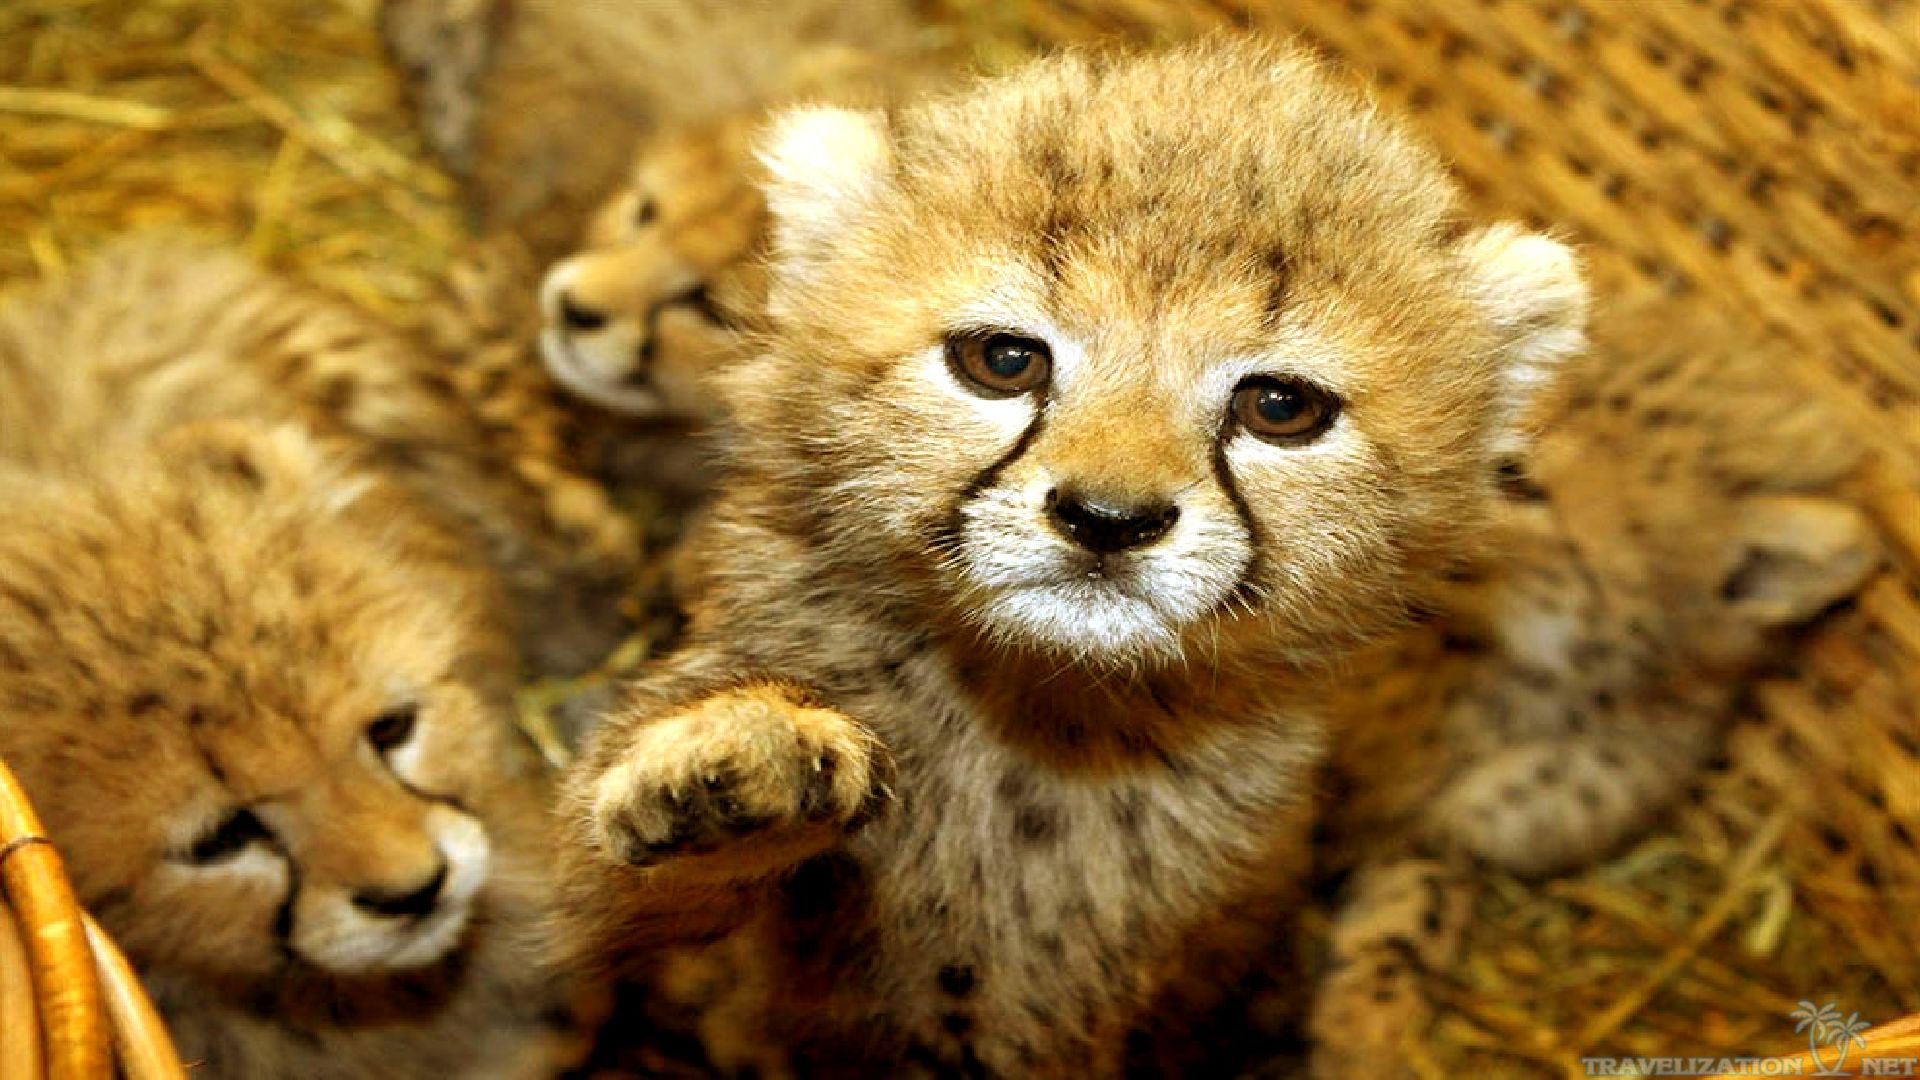 Gallery For gt Wild Baby Animal Wallpaper 1920x1080